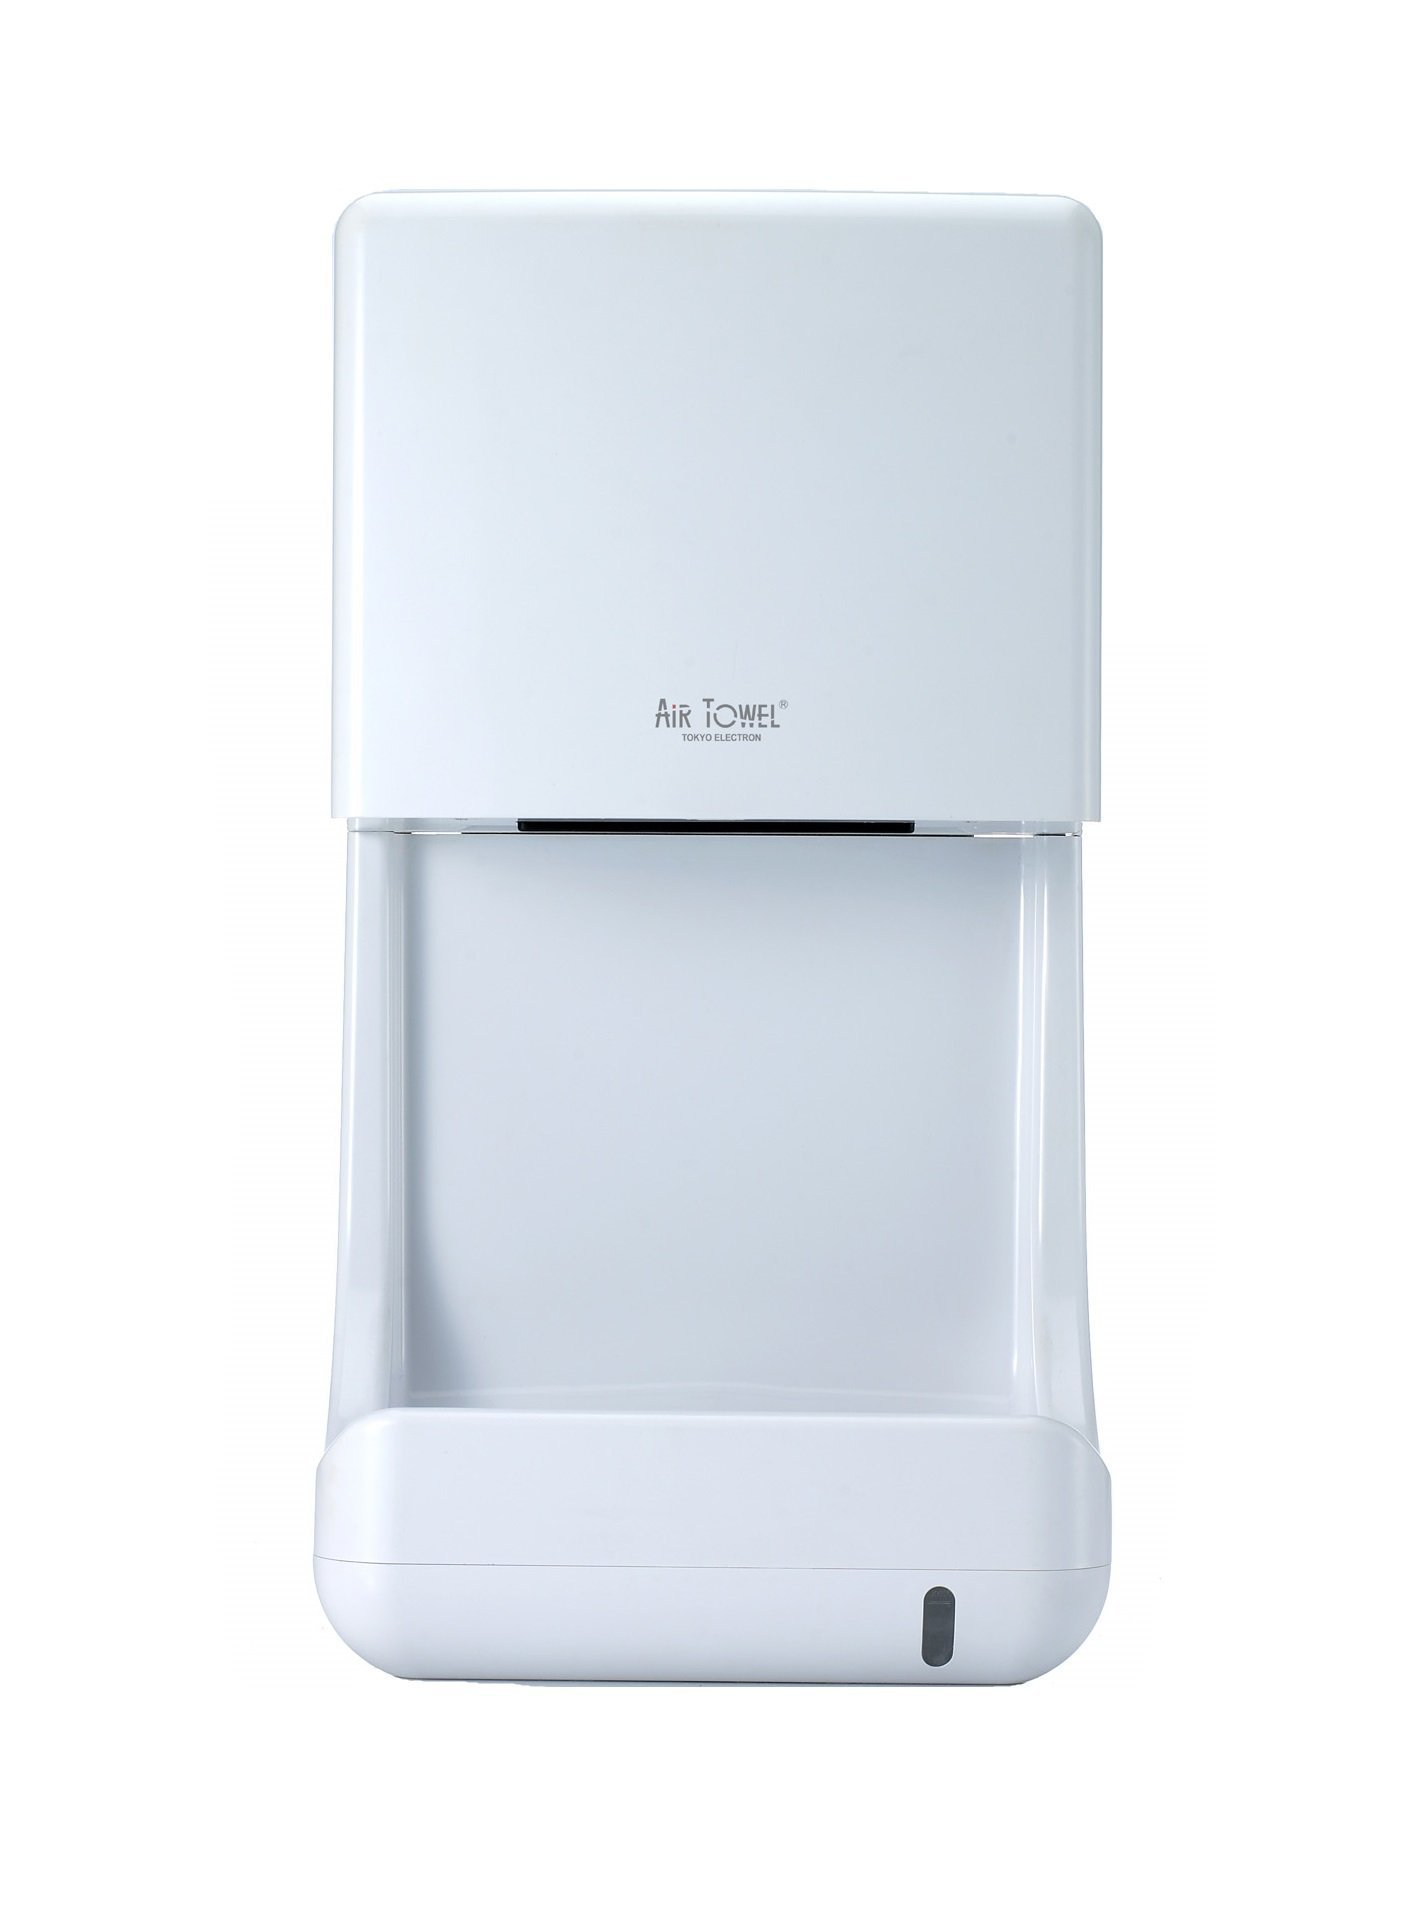 Air Towel Hand Dryer with Temperature Controlled High Speed Airflow, Energy Efficient, Removable Drying Tray